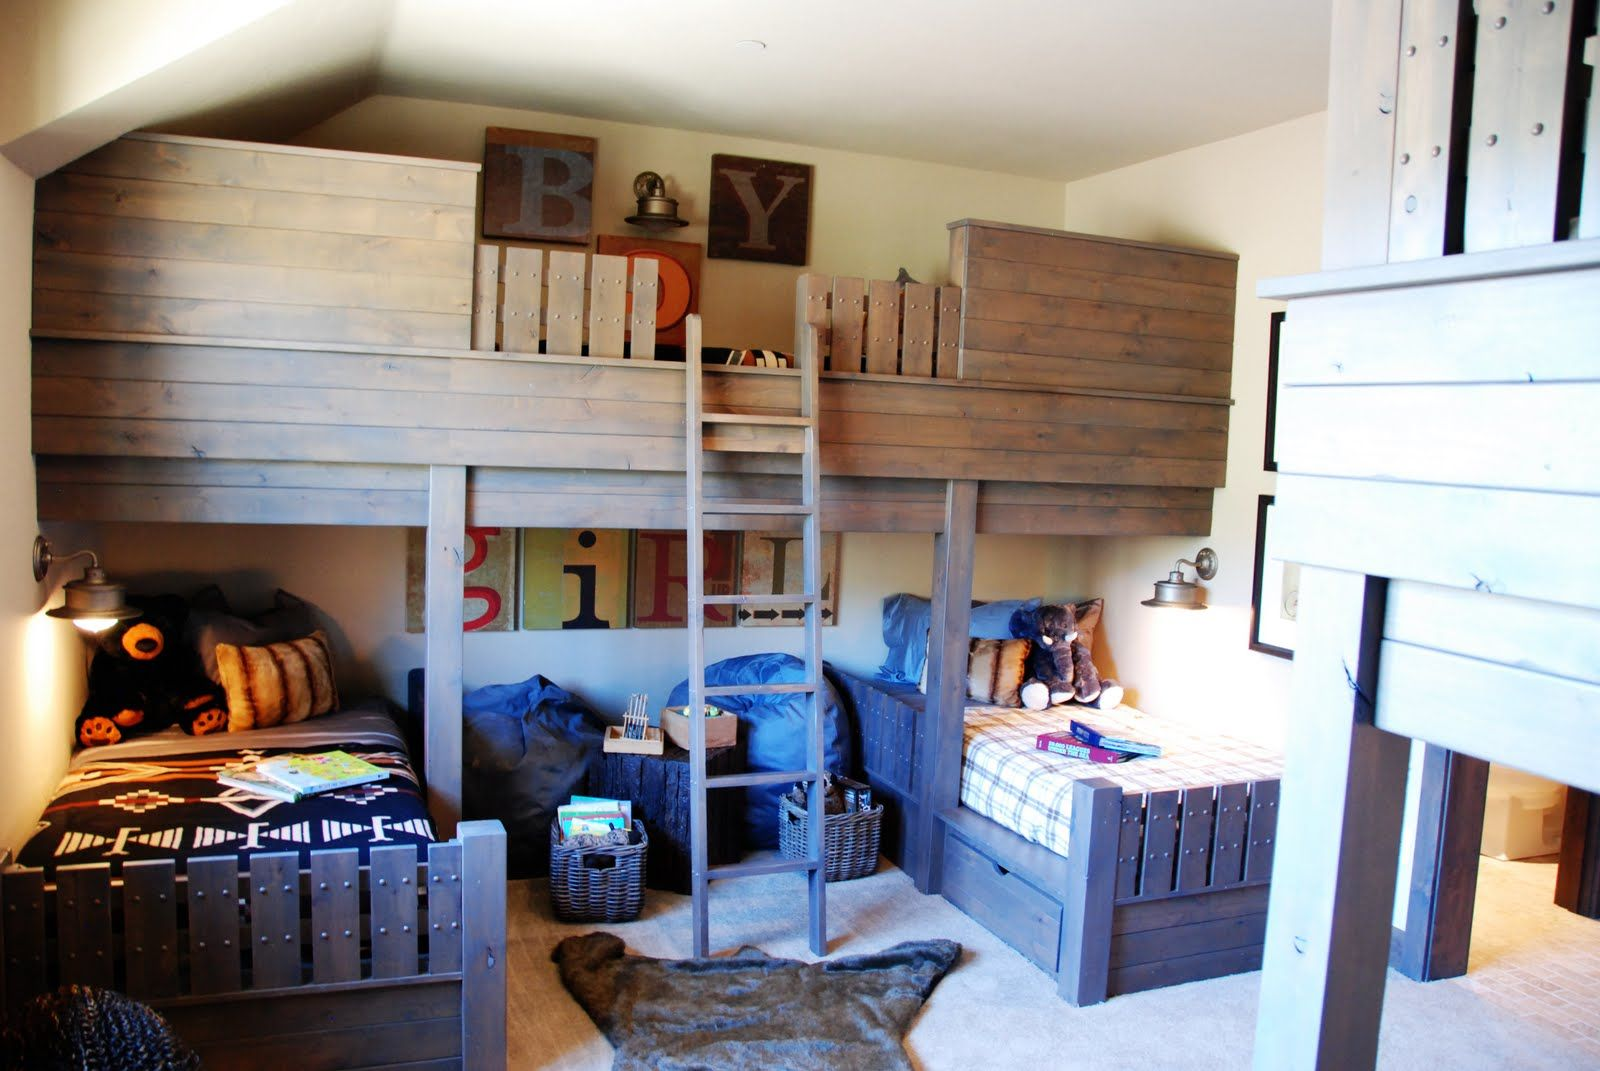 Bunk Beds For Short Ceilings | Atcsagacity.com